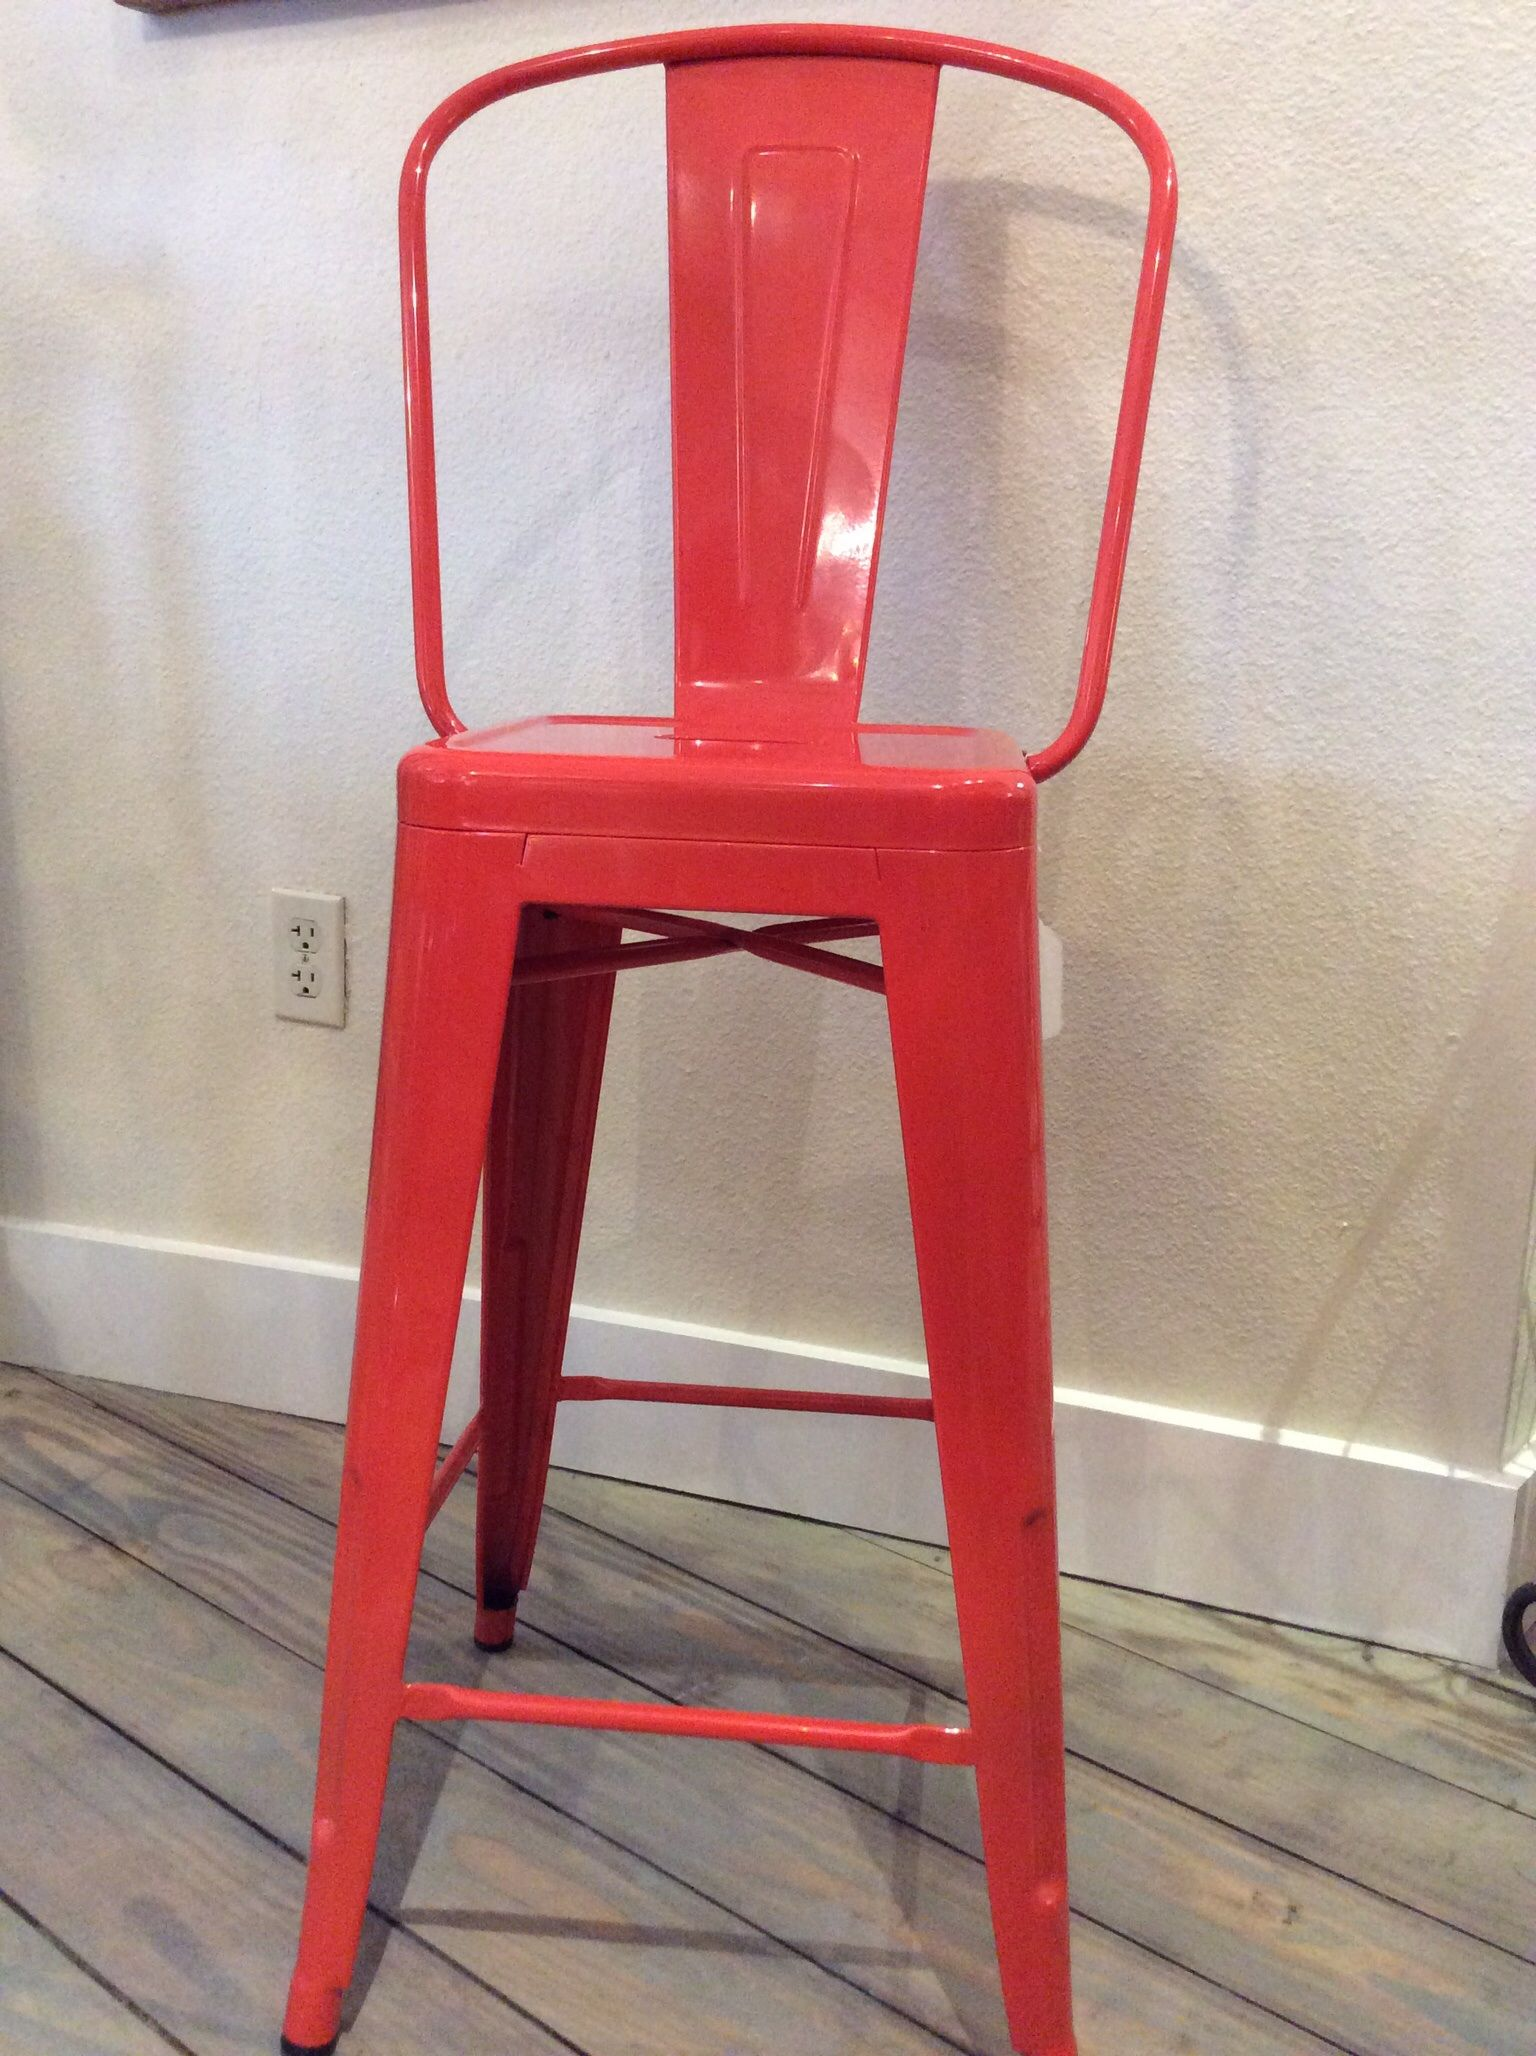 Orange Red Metal Counter Stool In Our Shop Metal Counter Stools Counter Stools Stool